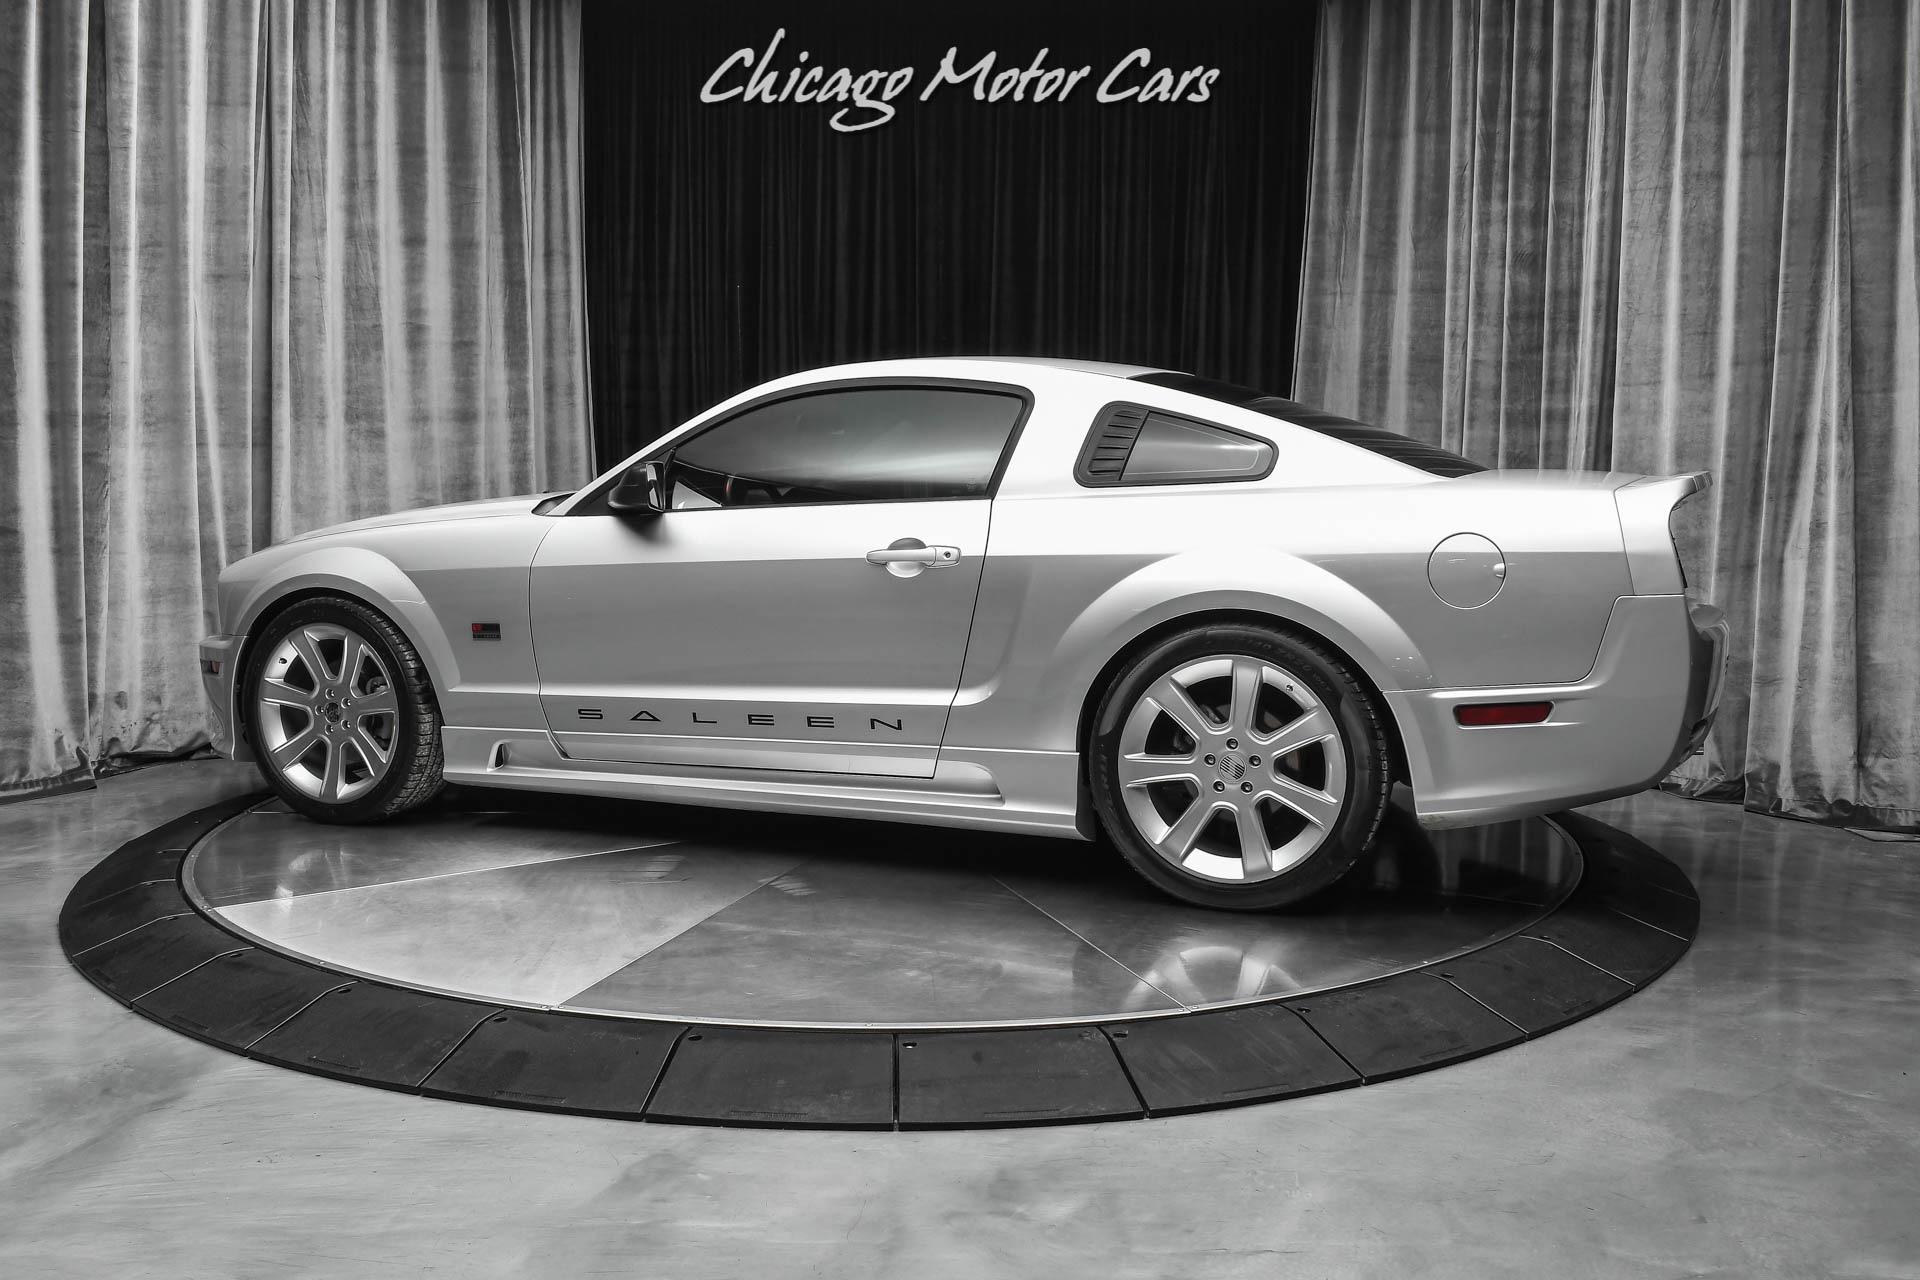 Used-2006-Ford-Mustang-Saleen-SuperCharged-GT-550hp